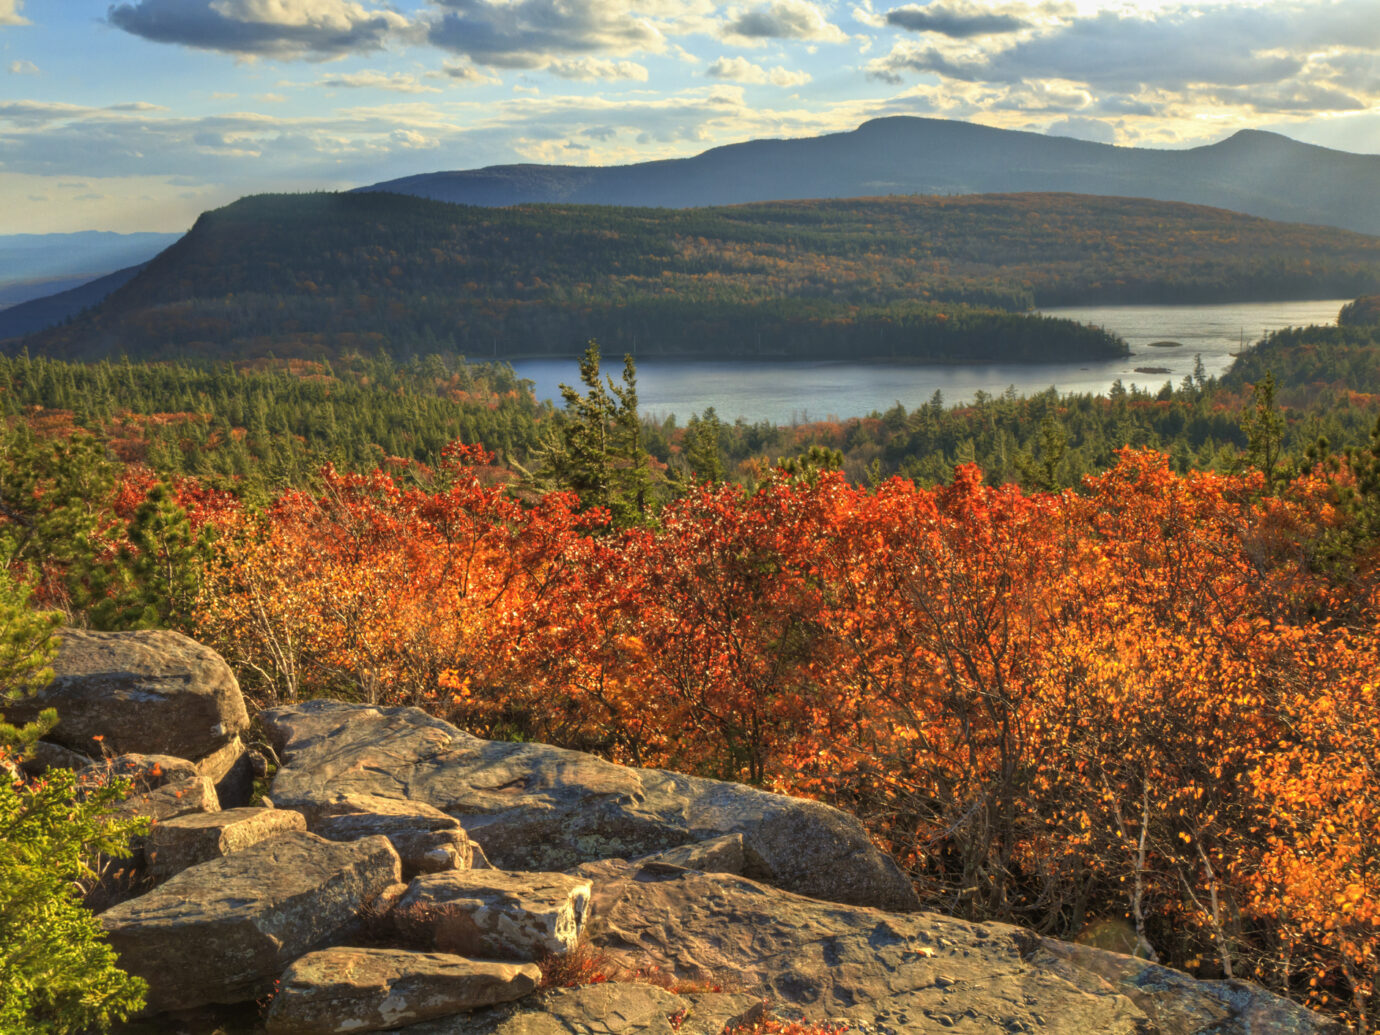 """Afternoon sun on sunset rock in the Autumn, overlooking North-South Lake in the Catskills Mountains of New York."